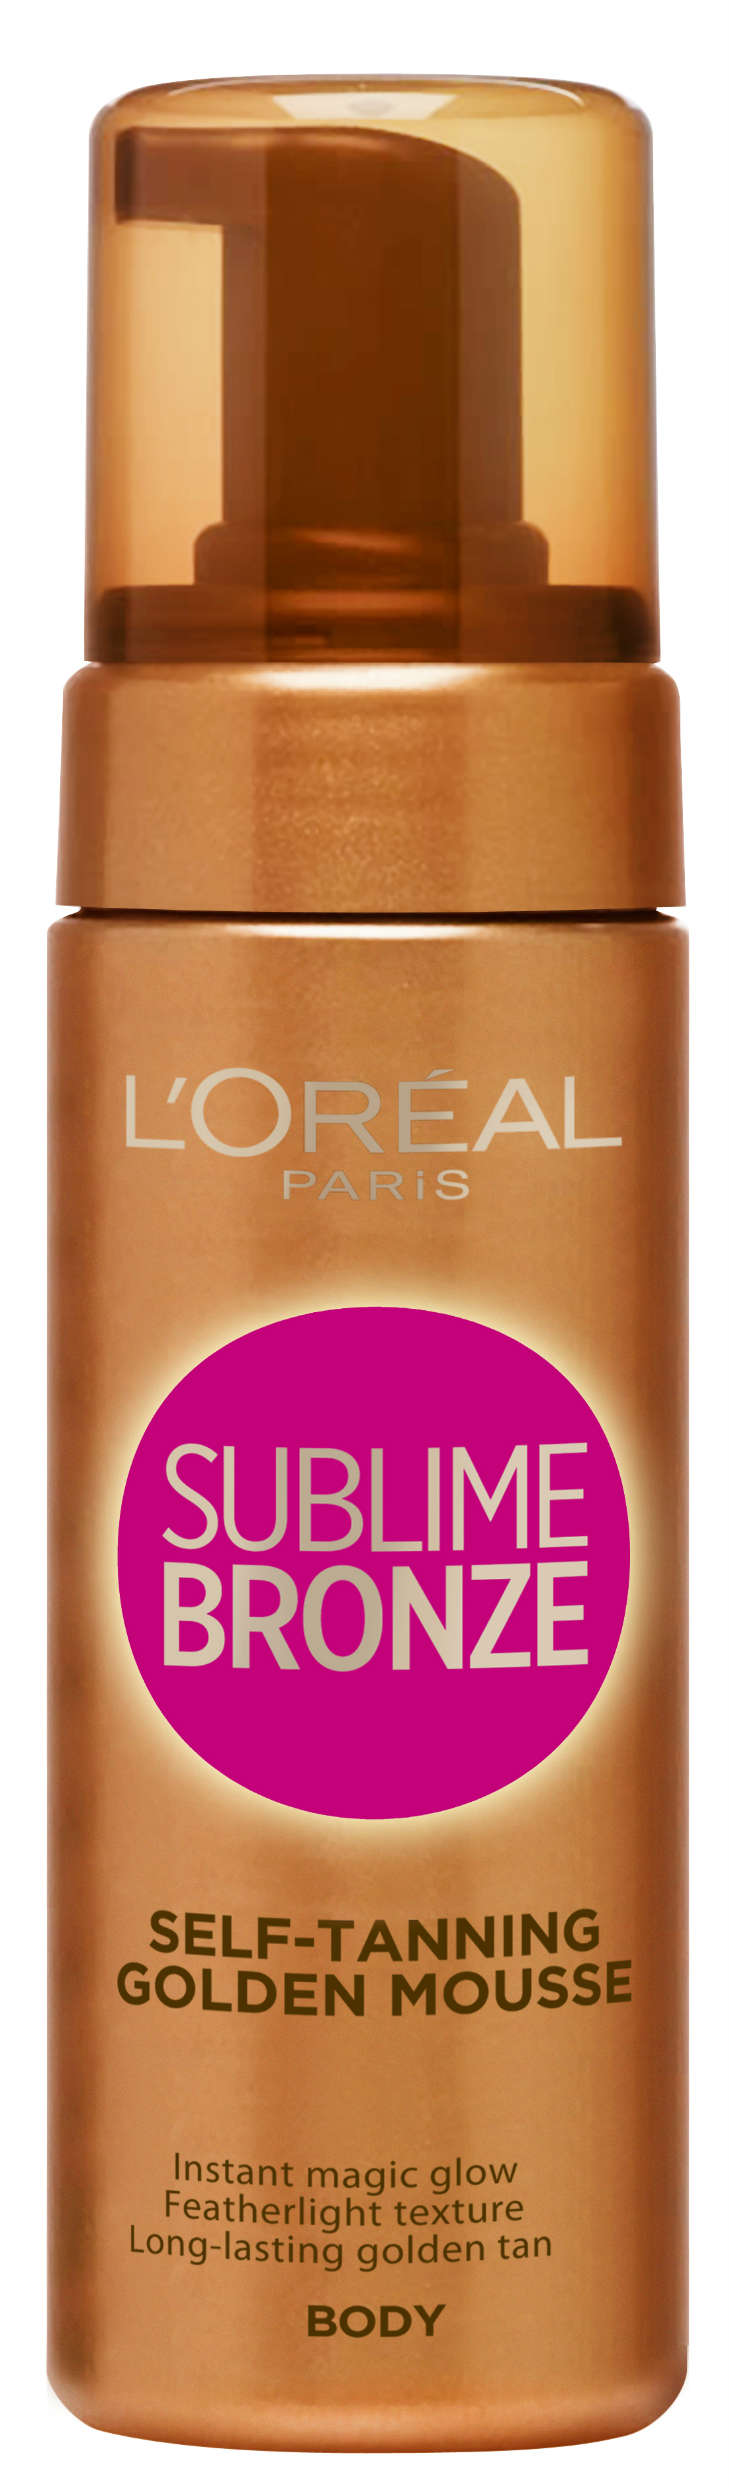 loreal sublime bronze